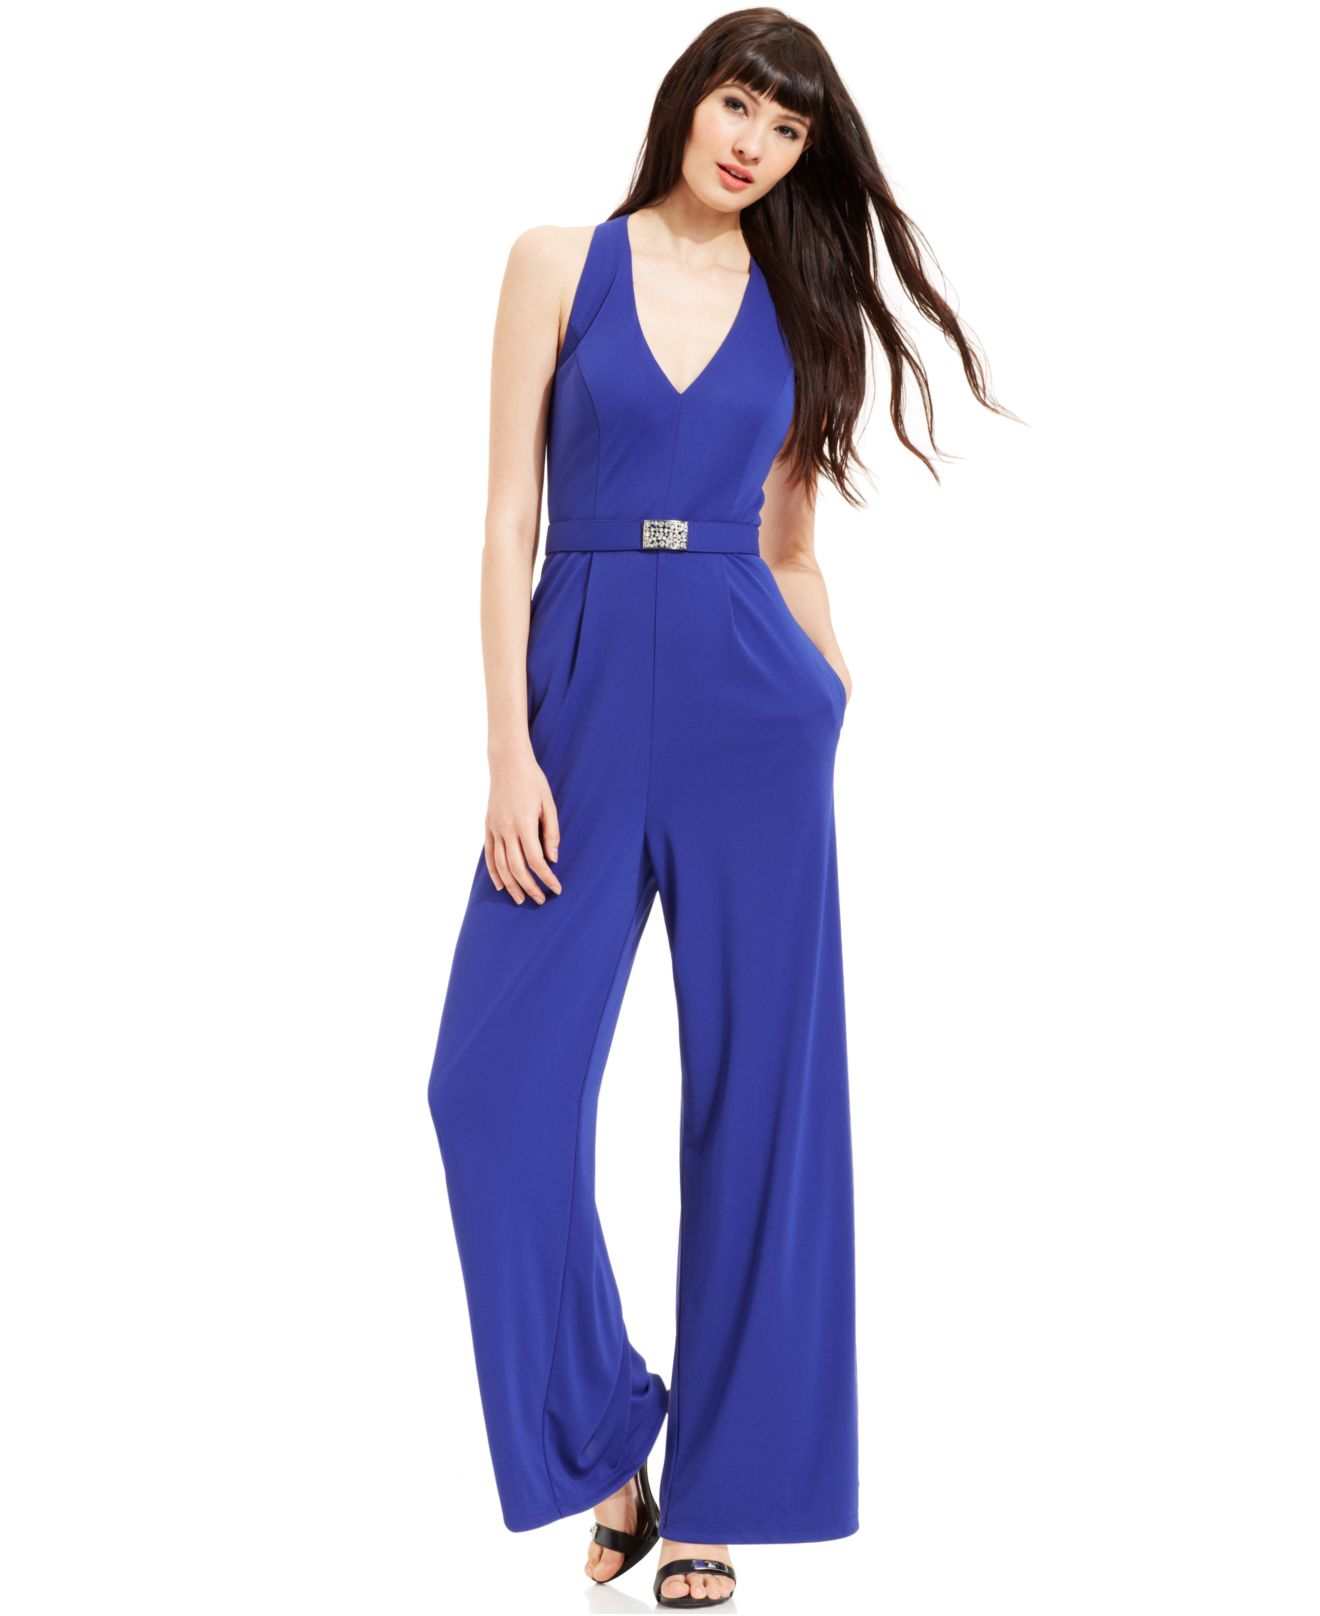 07a82d4da093f Lyst - Vince Camuto Wide-Leg Halter Jumpsuit in Blue